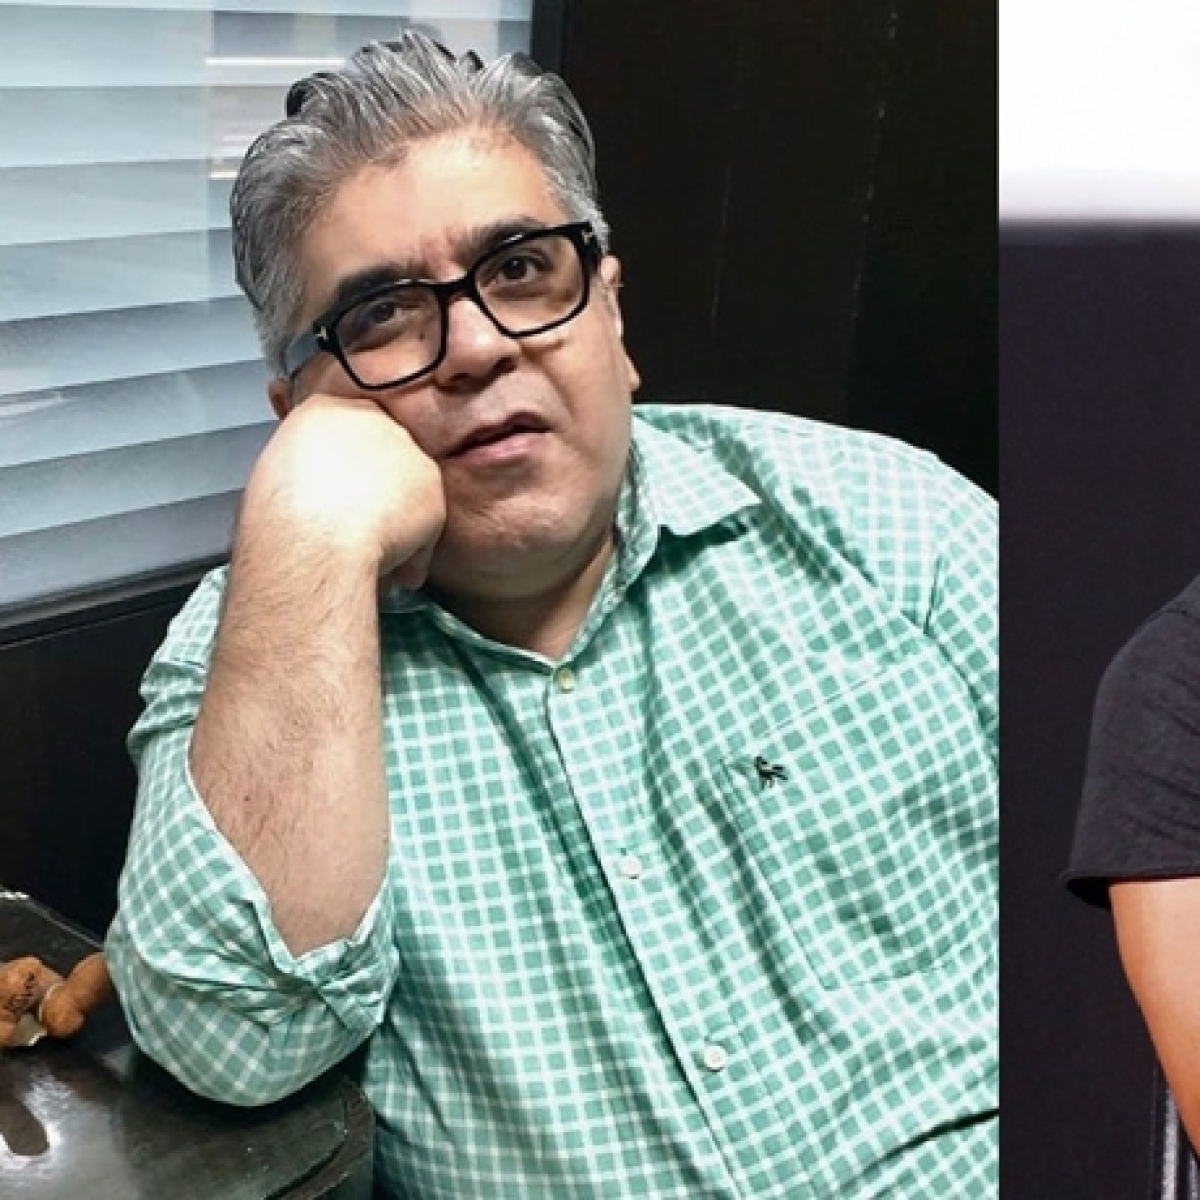 Manoj Bajpayee, Apurva Asrani call out film critic Rajeev Masand over 'vicious' blind items on Sushant Singh Rajput